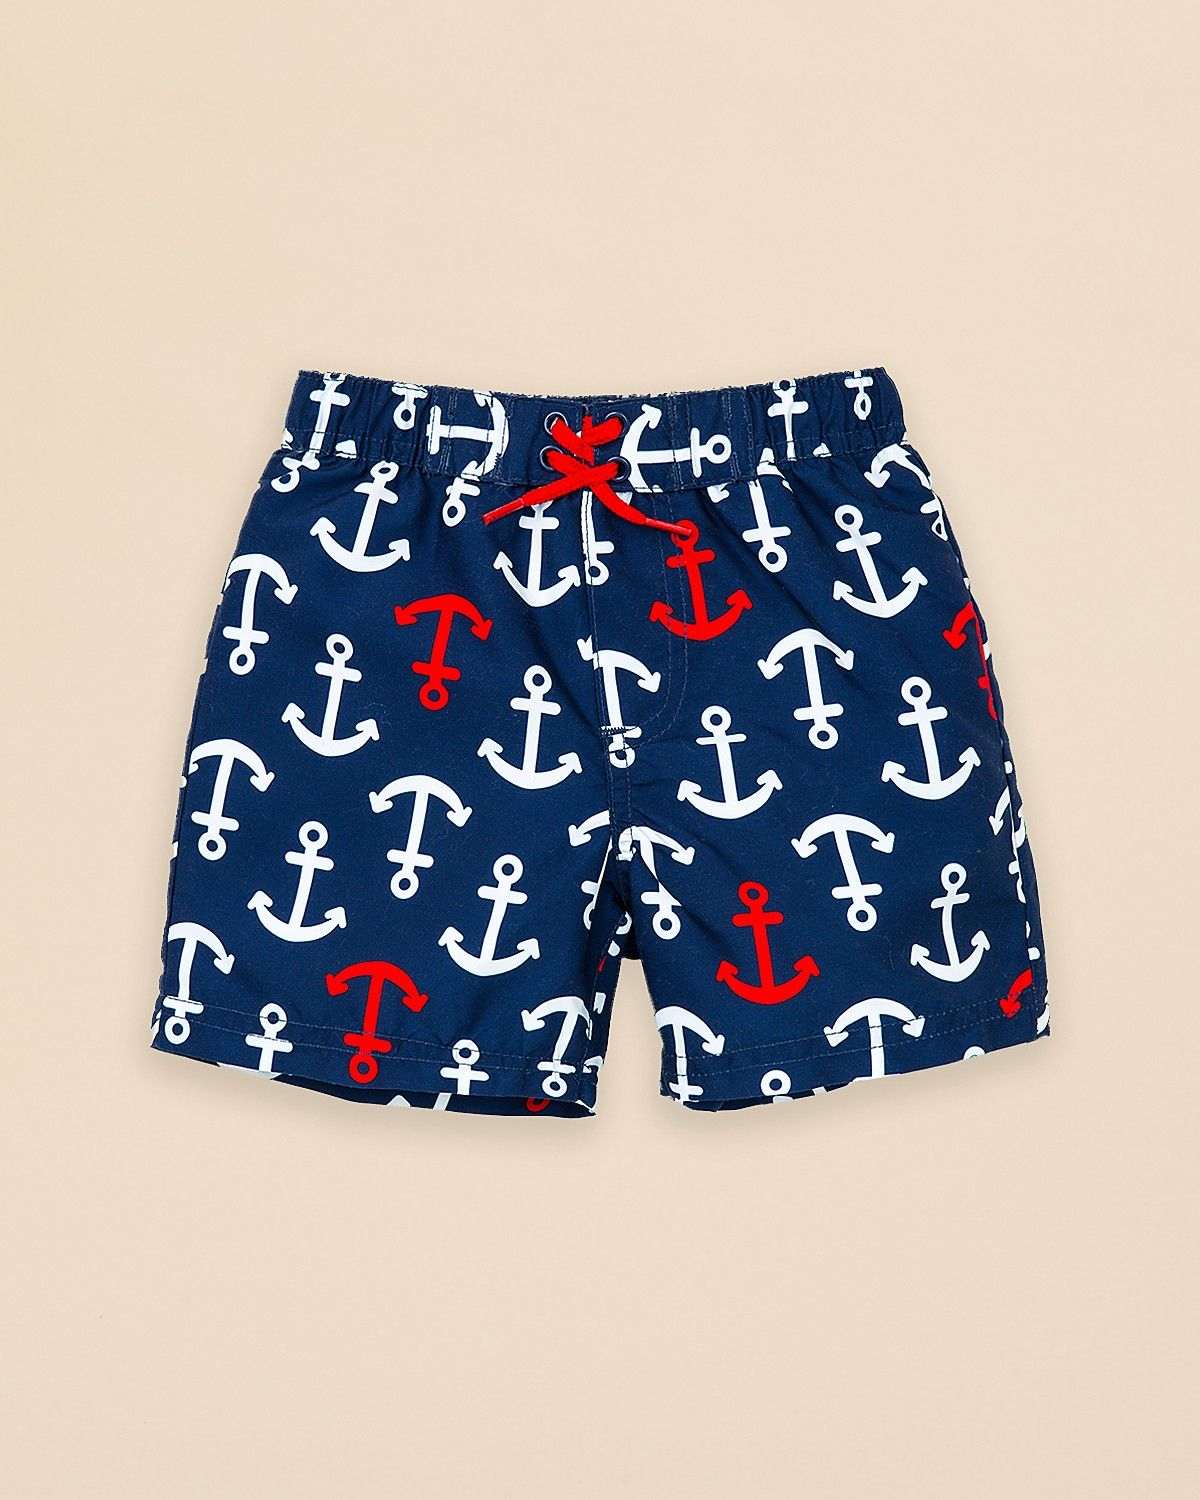 6e40afd9ba Little Me Infant Boys' Anchor Swim Trunks - Sizes 6-24 Months |  Bloomingdale's